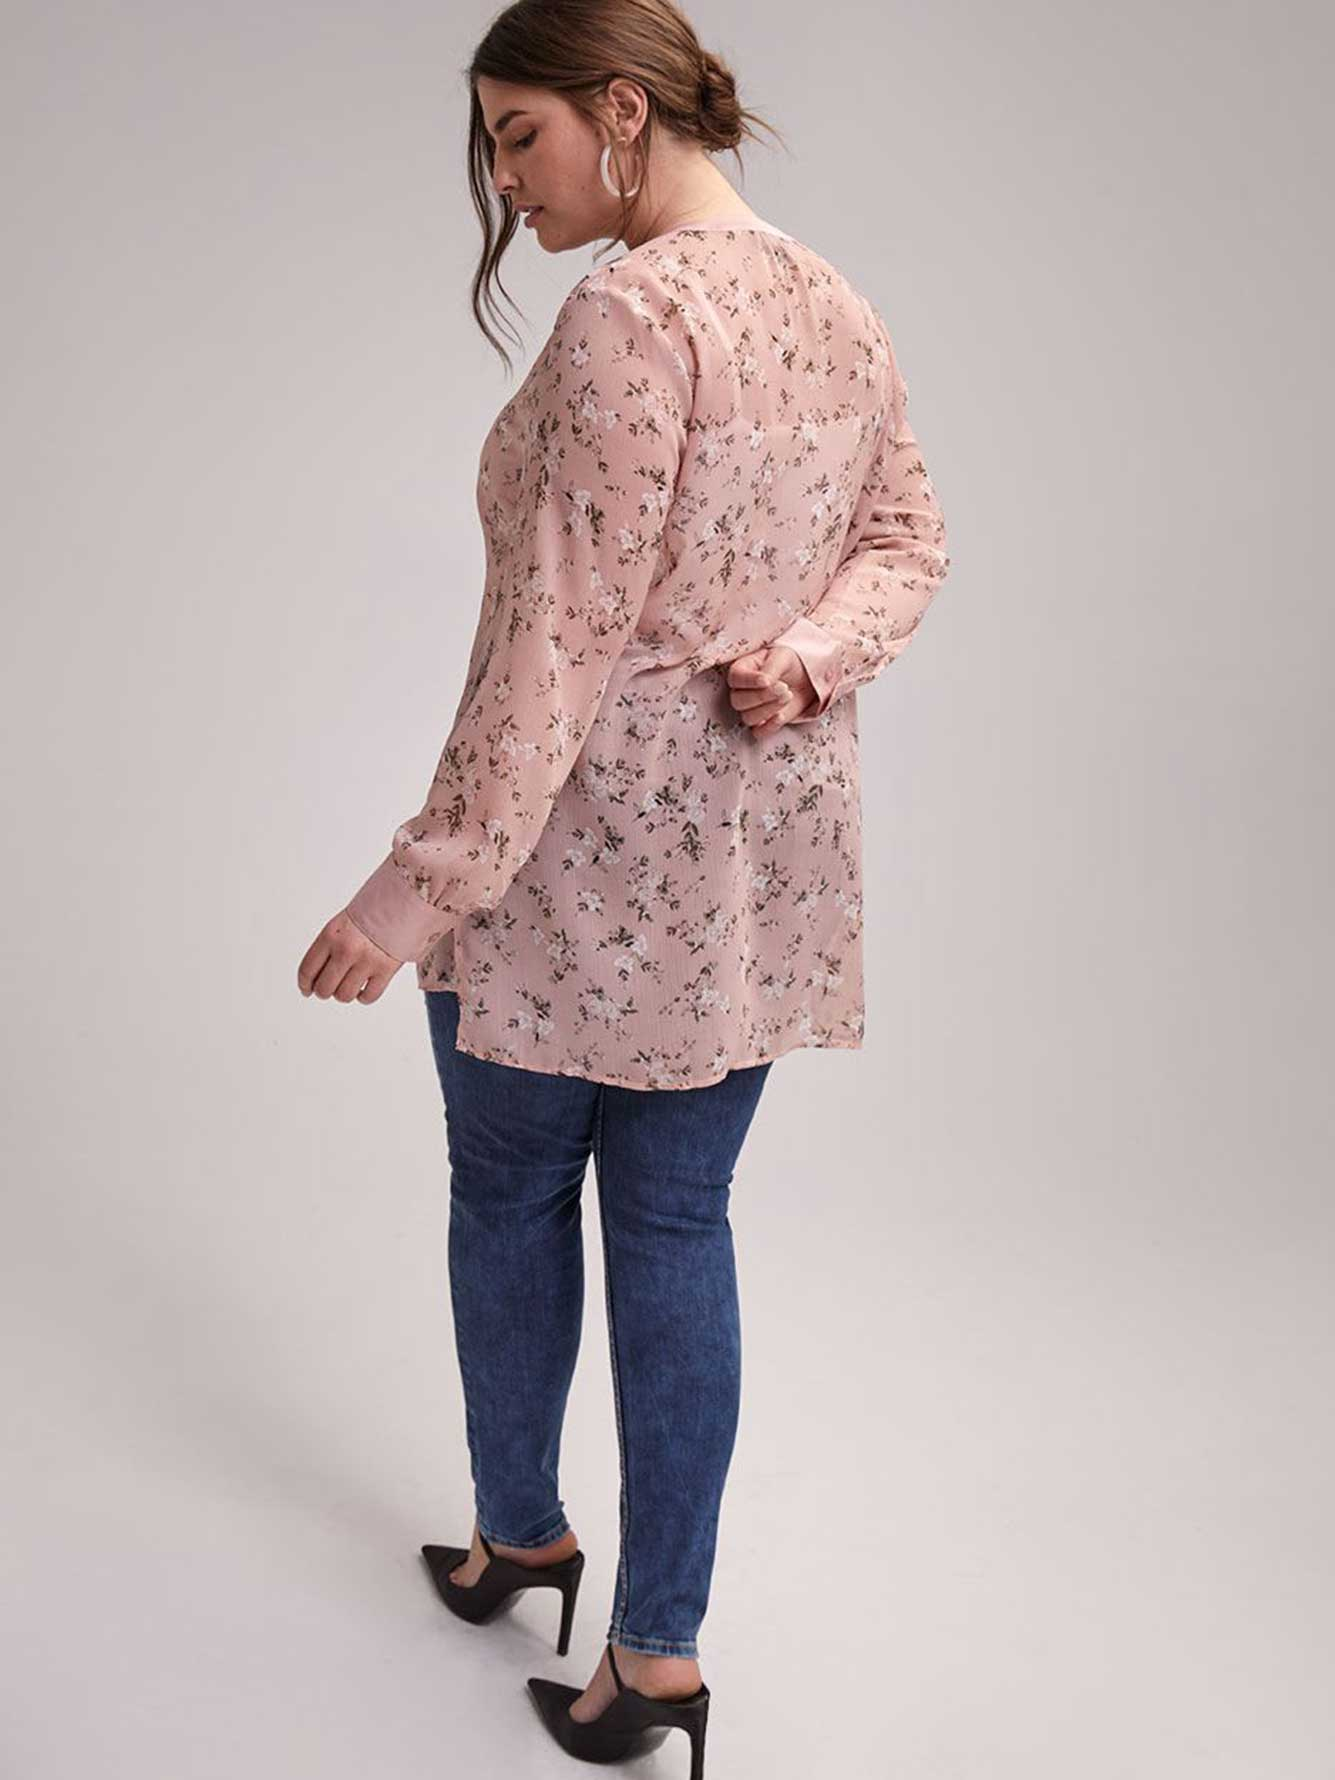 Printed Tunic Blouse with Smocking Details - Michel Studio